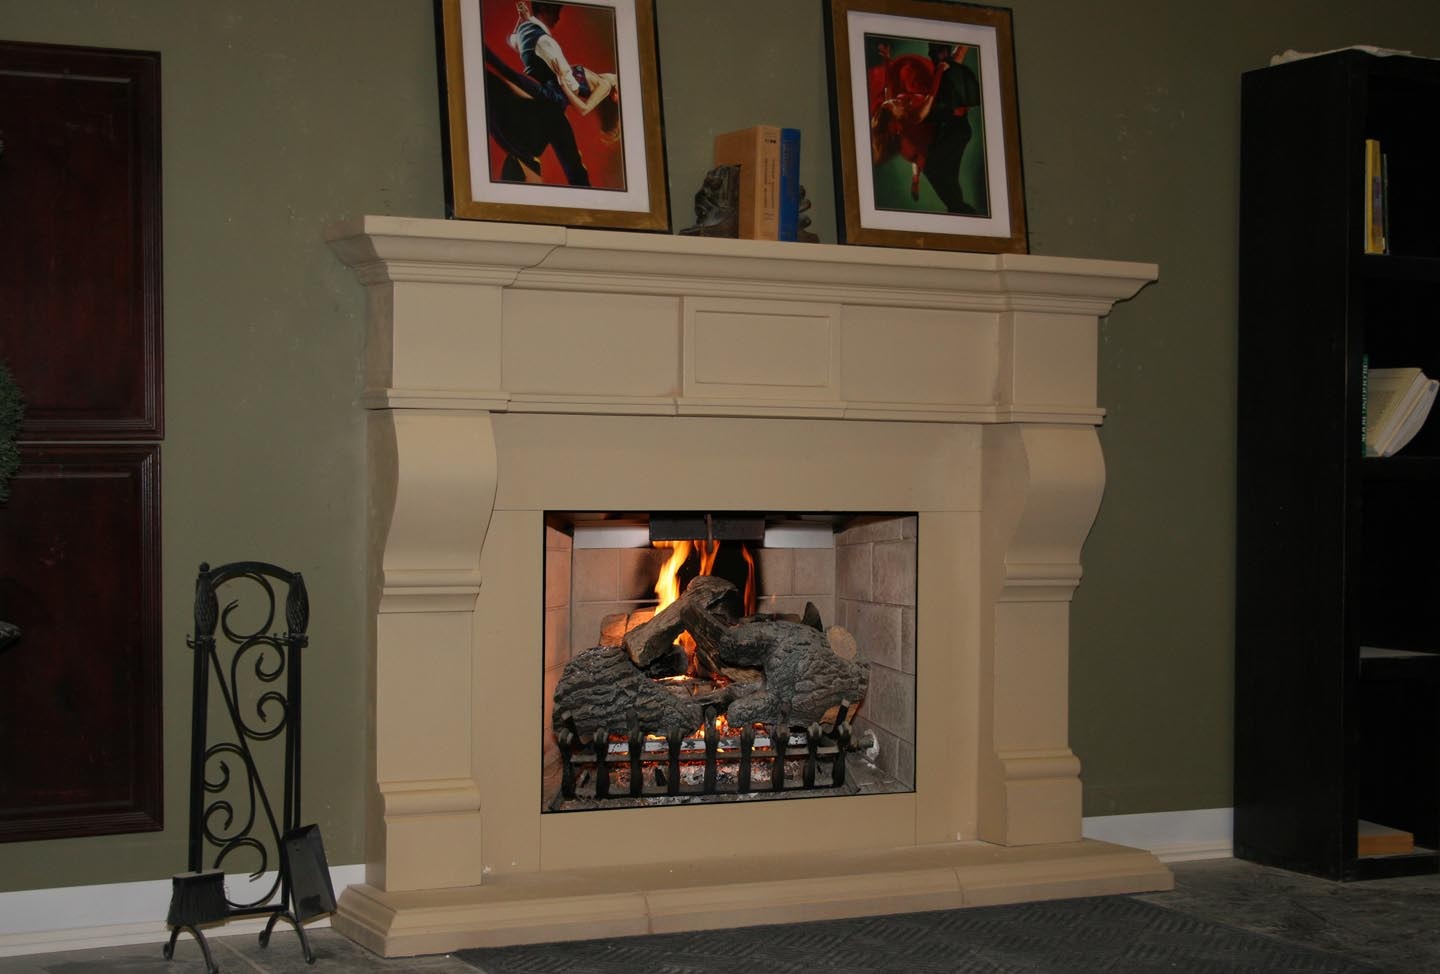 Mt221 Fireplace Mantels Fireplace Surrounds Iron Fireplace Doors And Screens In San Diego